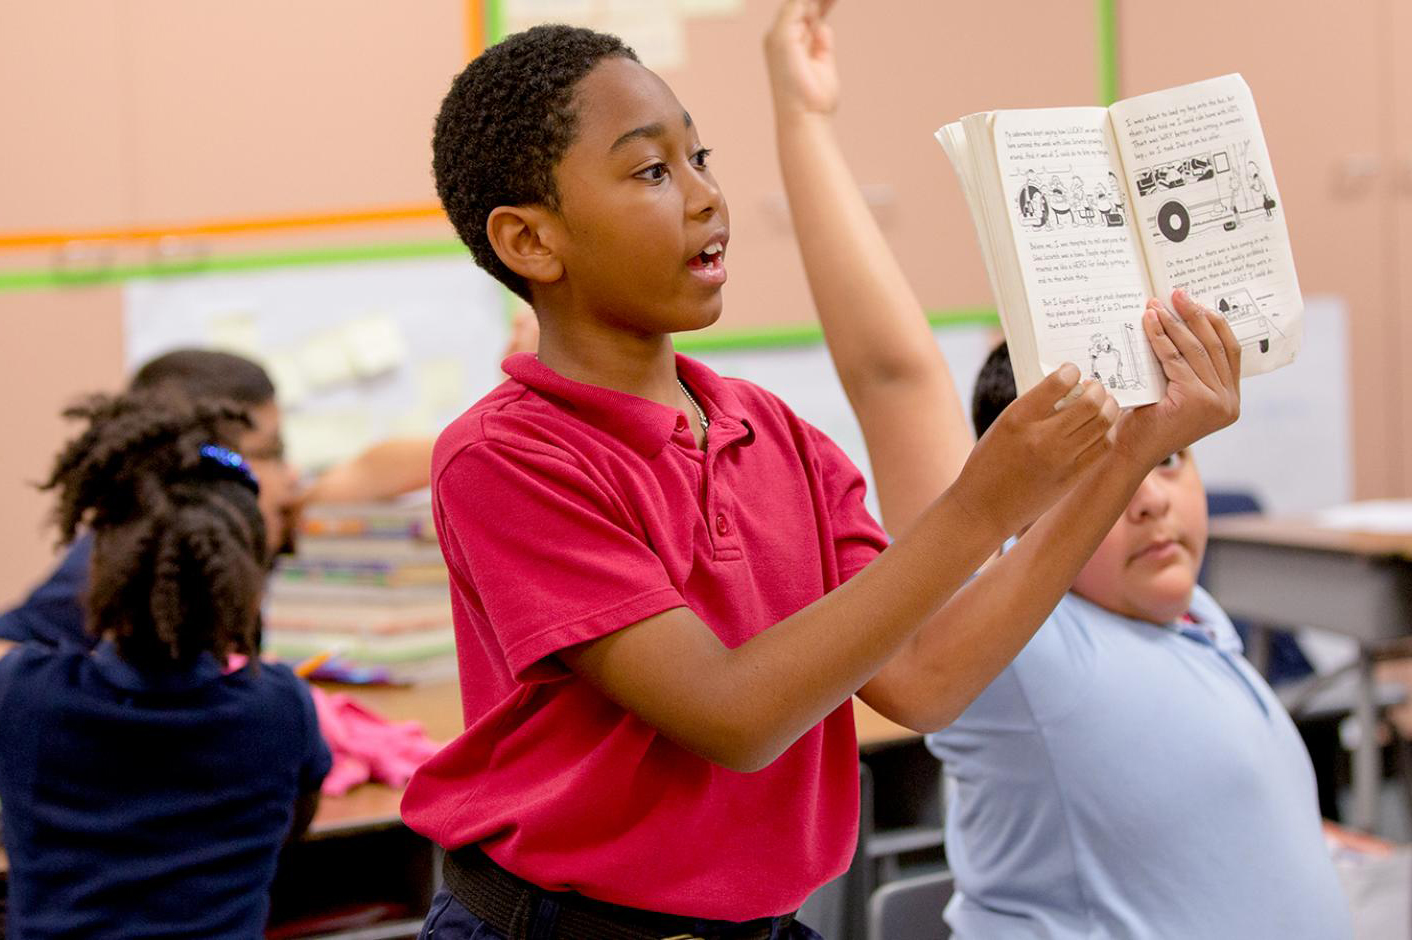 A black boy stands and holds up a book while his classmates look on